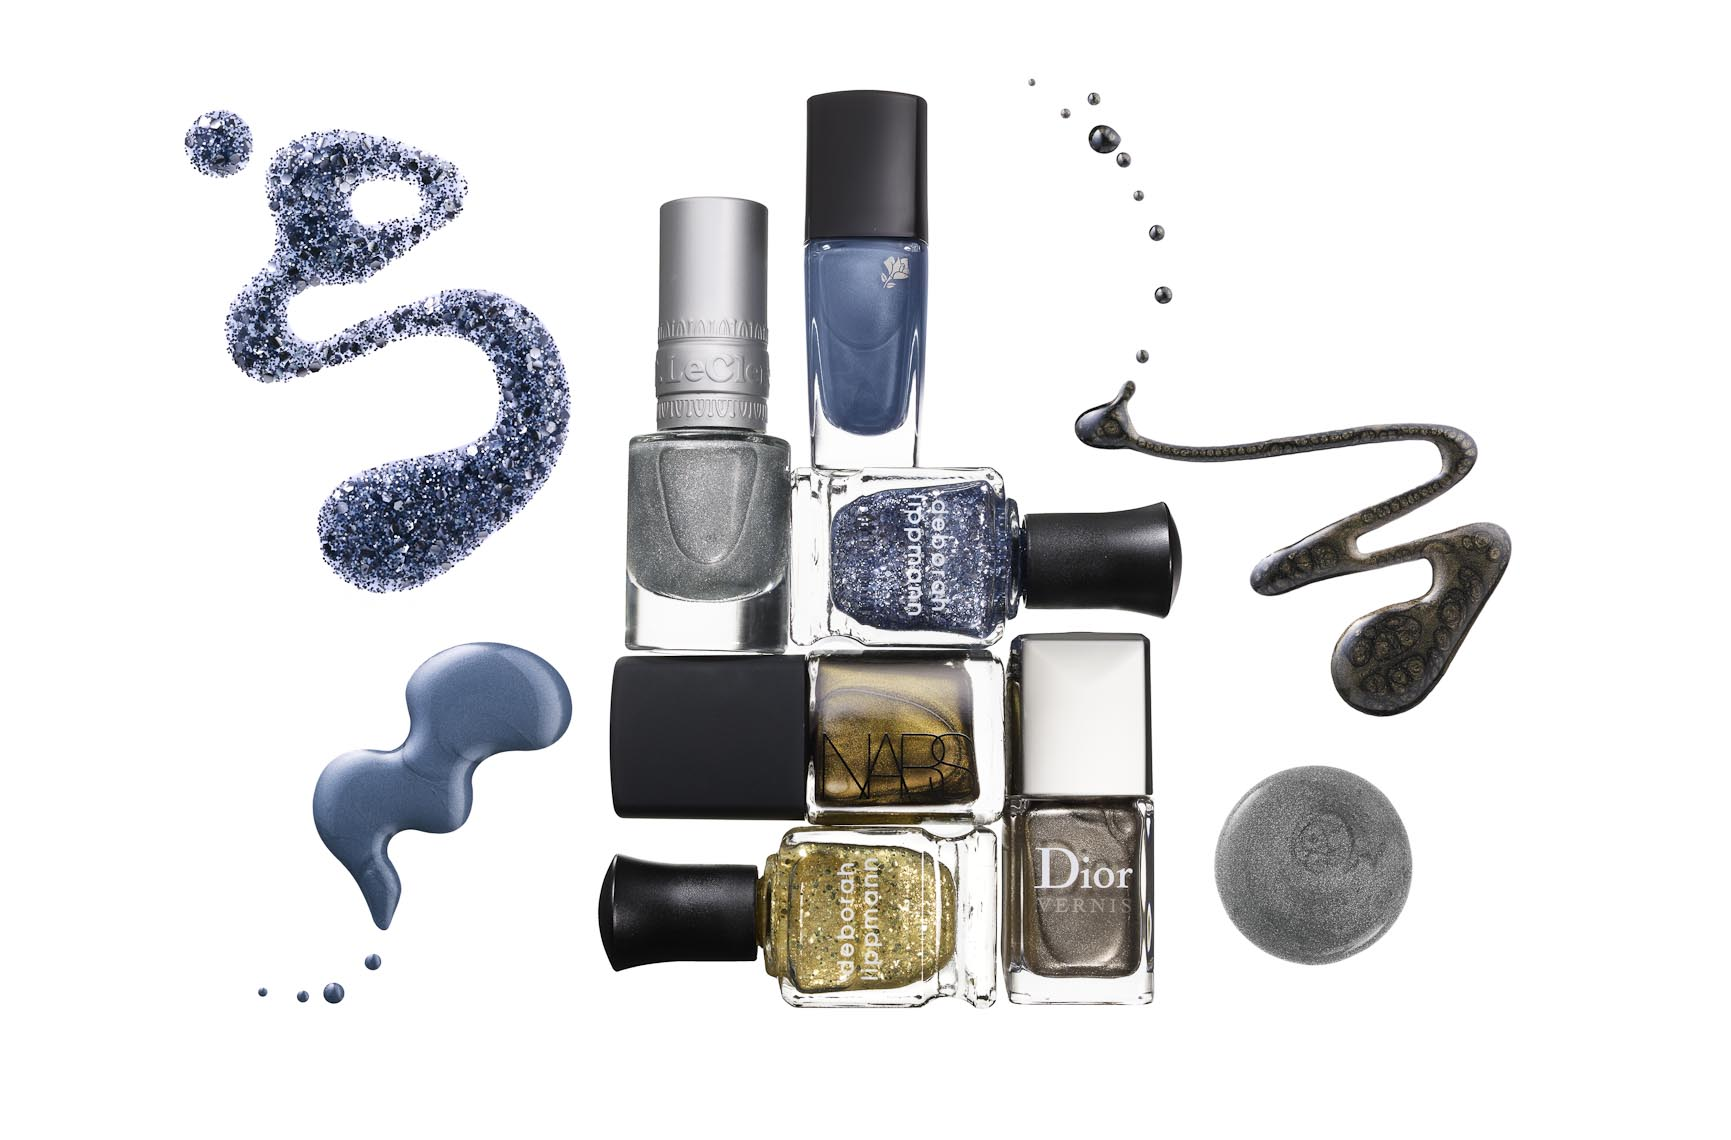 Cosmetics, Nailpolish Product Shot and Spills of Metallic Nail Lacquer - Mike Lorrig